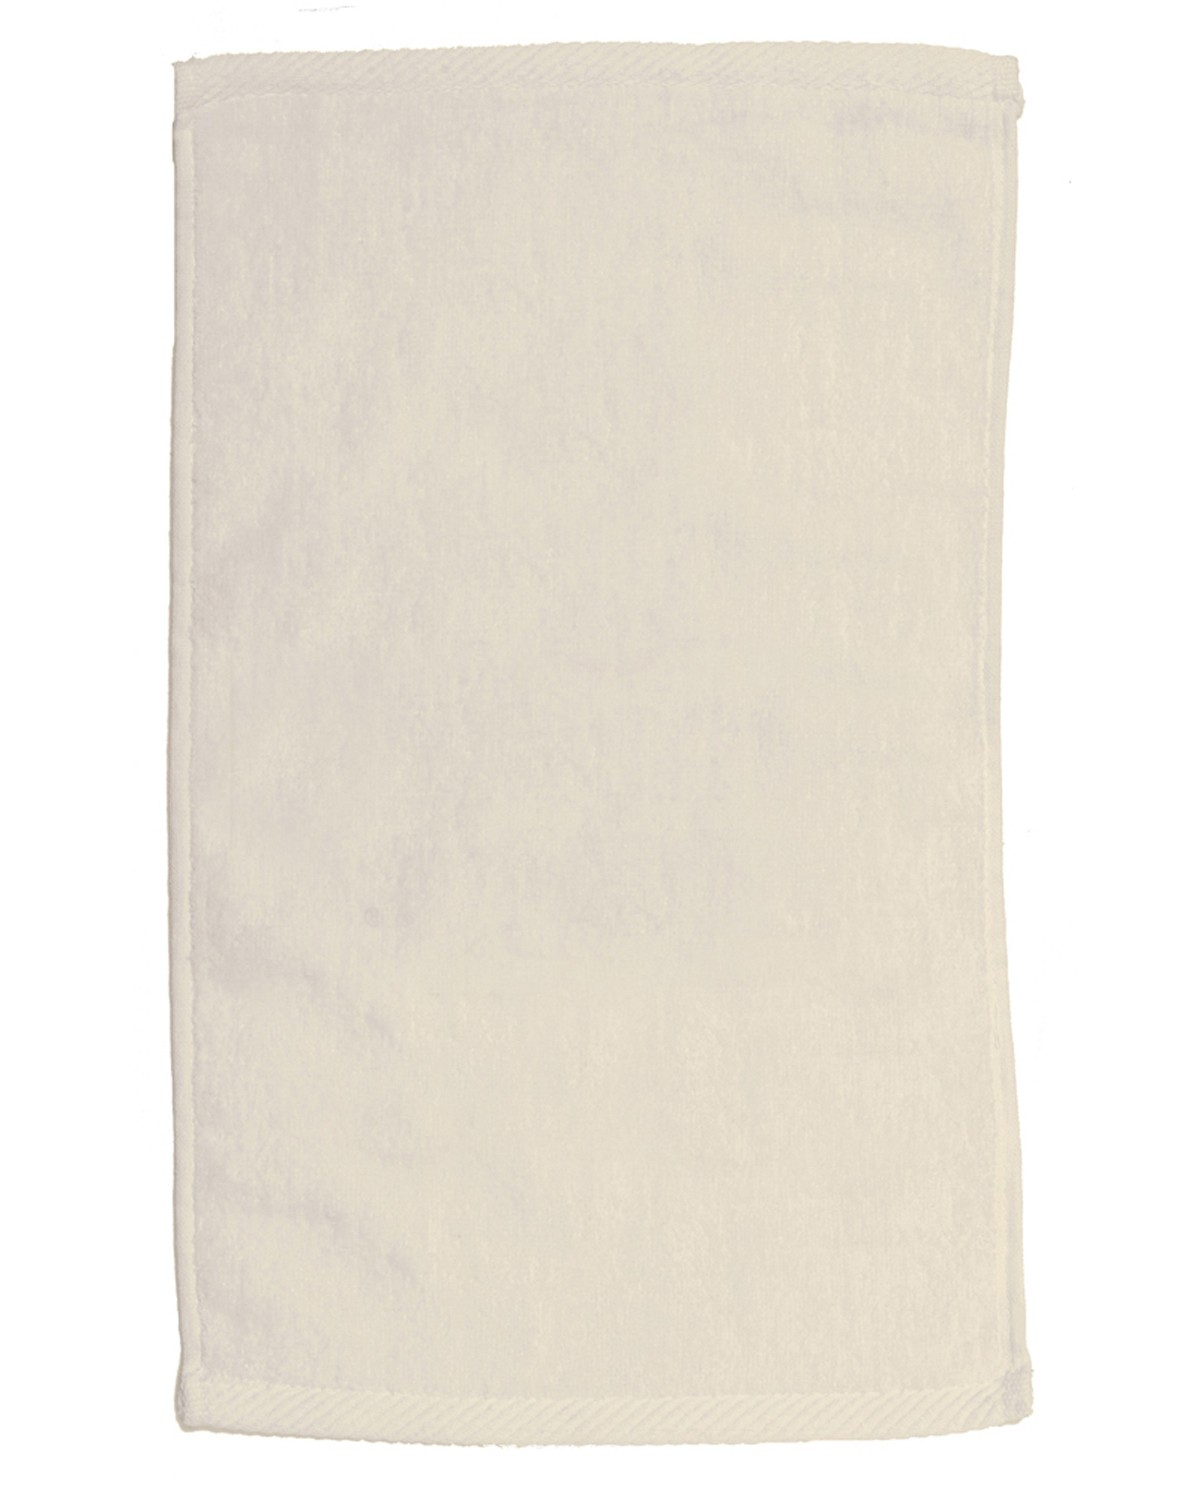 1118DE Pro Towels NATURAL